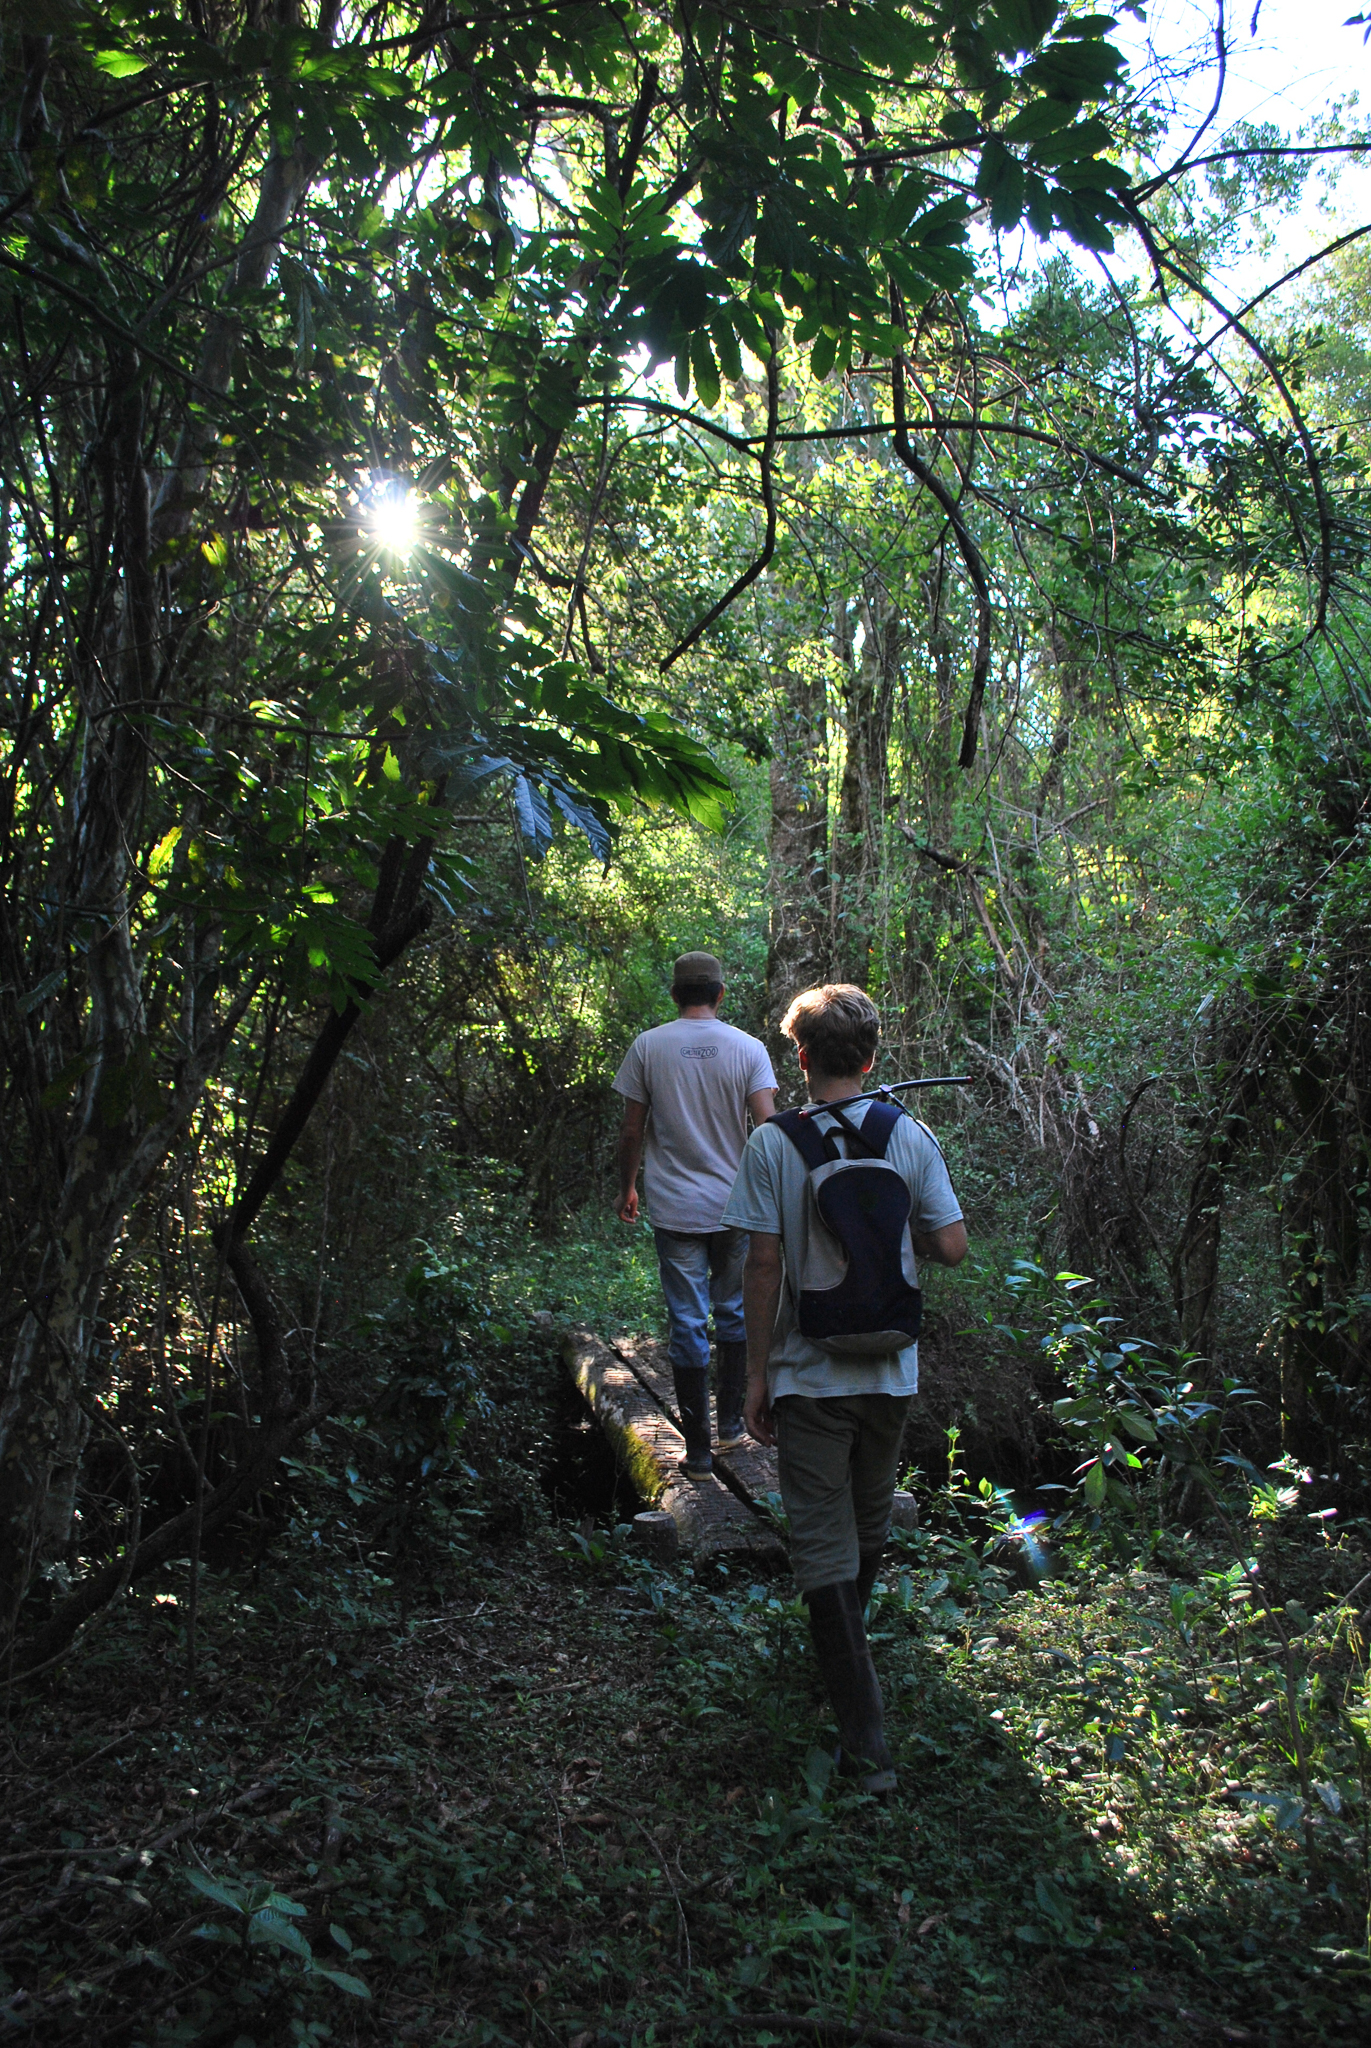 Ranger Emanuel Galetto and Lautaro Barbarik, a volunteer, search for giant anteaters.—Photo by Brooke Jarvis